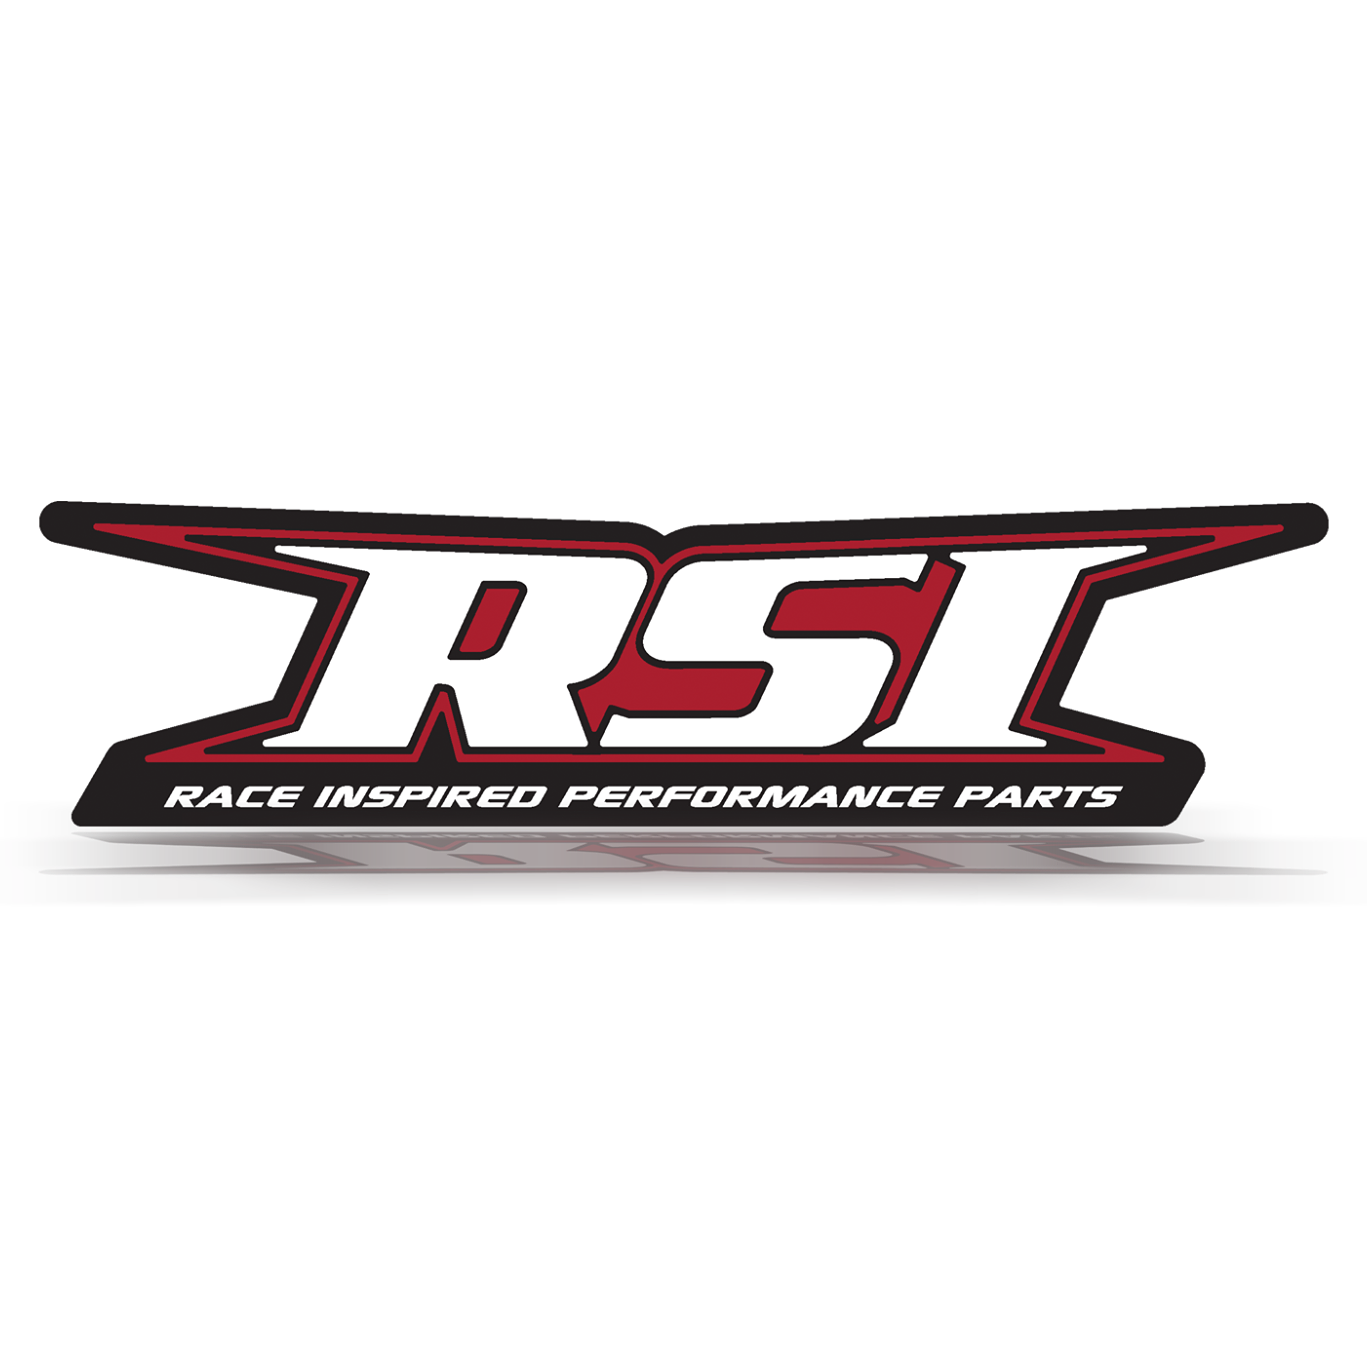 RSI Racing Announces Virtual Snow Shows With Huge Storewide Discount, Free Shipping